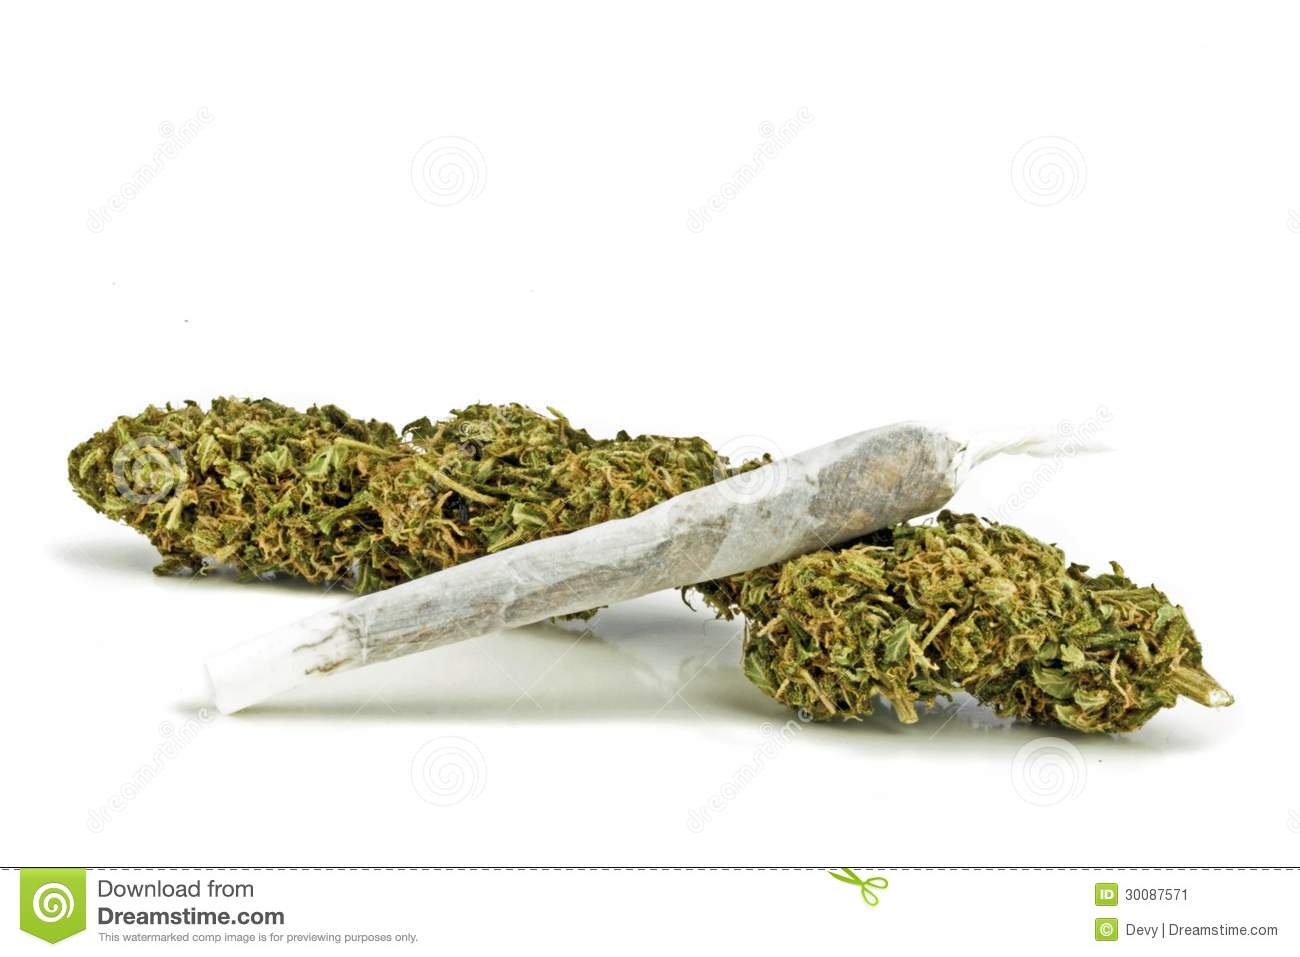 Marihuana with a joint